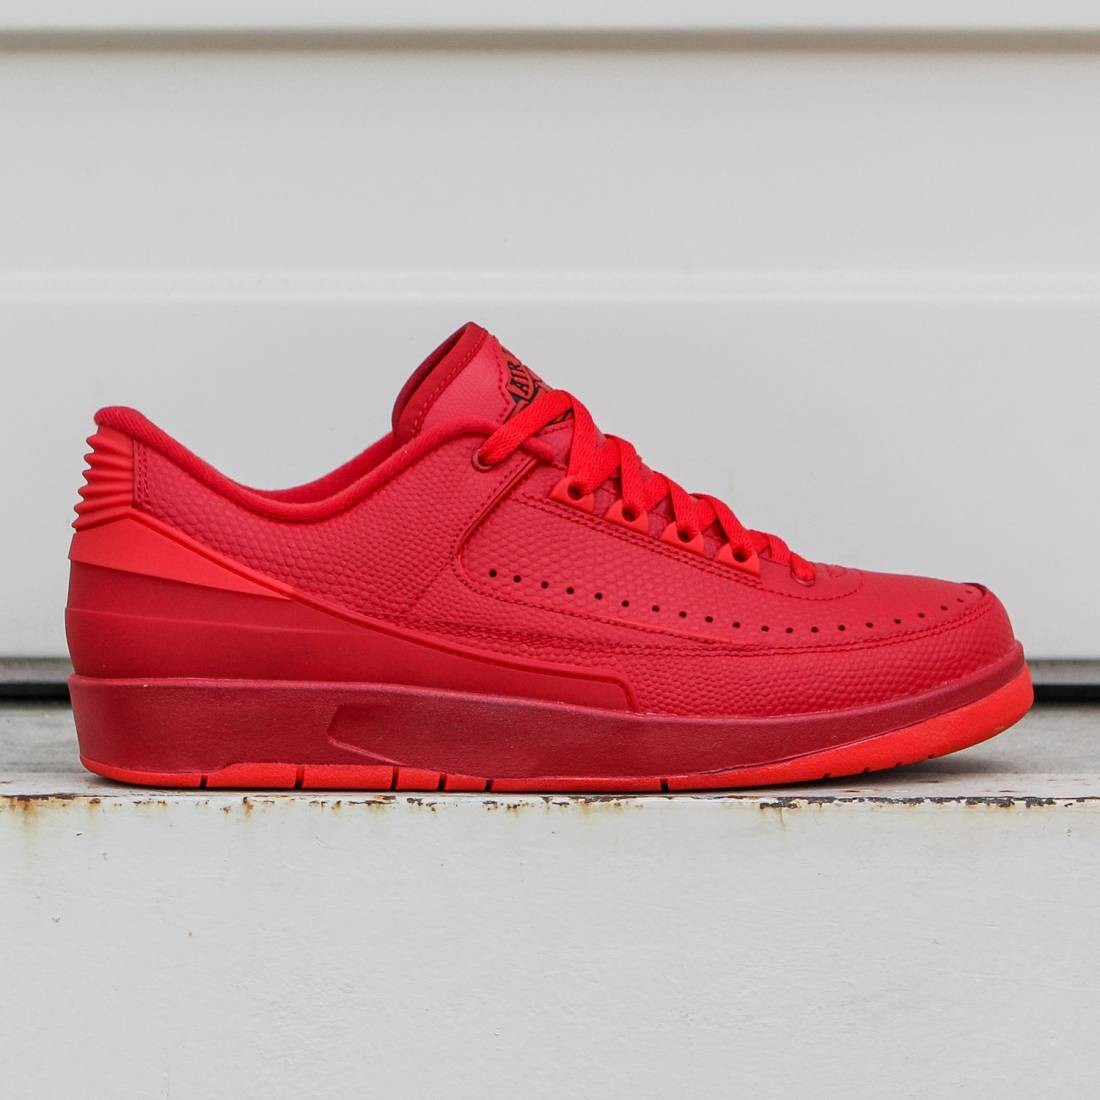 buy online bb0d4 88170 Jordan Men AIR JORDAN 2 RETRO LOW (red   gym red   hyper turq   university  red)